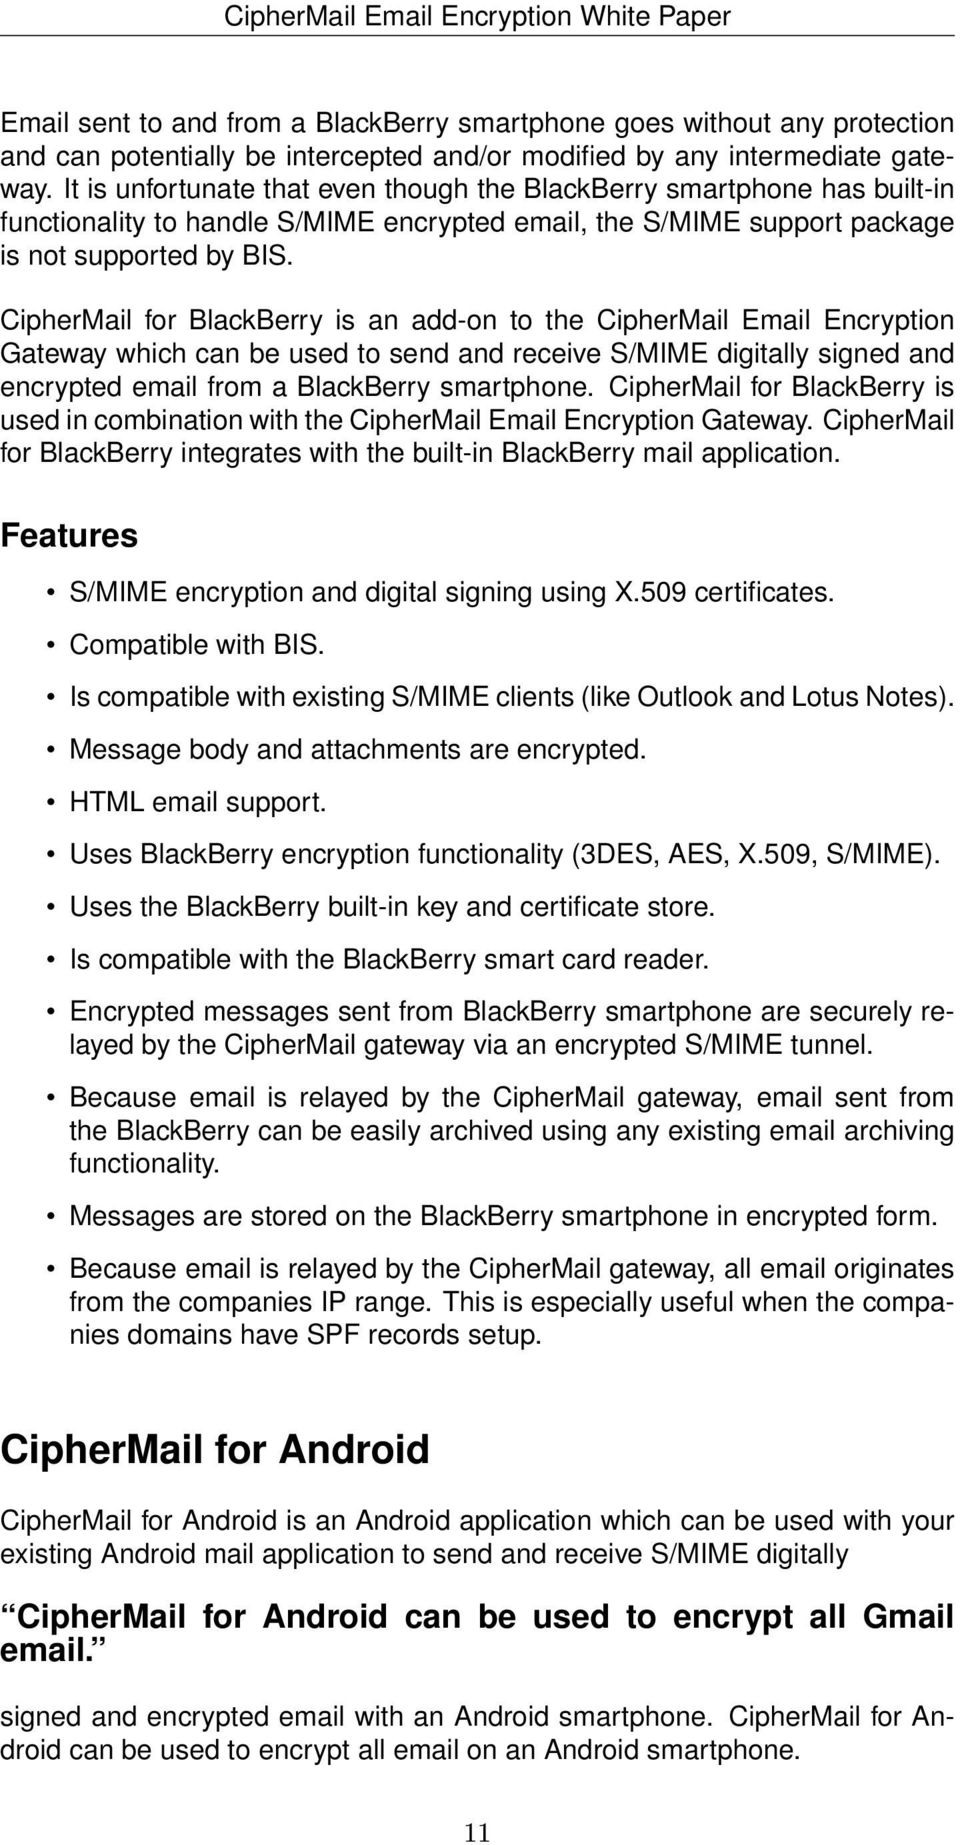 CipherMail for BlackBerry is an add-on to the CipherMail Email Encryption Gateway which can be used to send and receive S/MIME digitally signed and encrypted email from a BlackBerry smartphone.